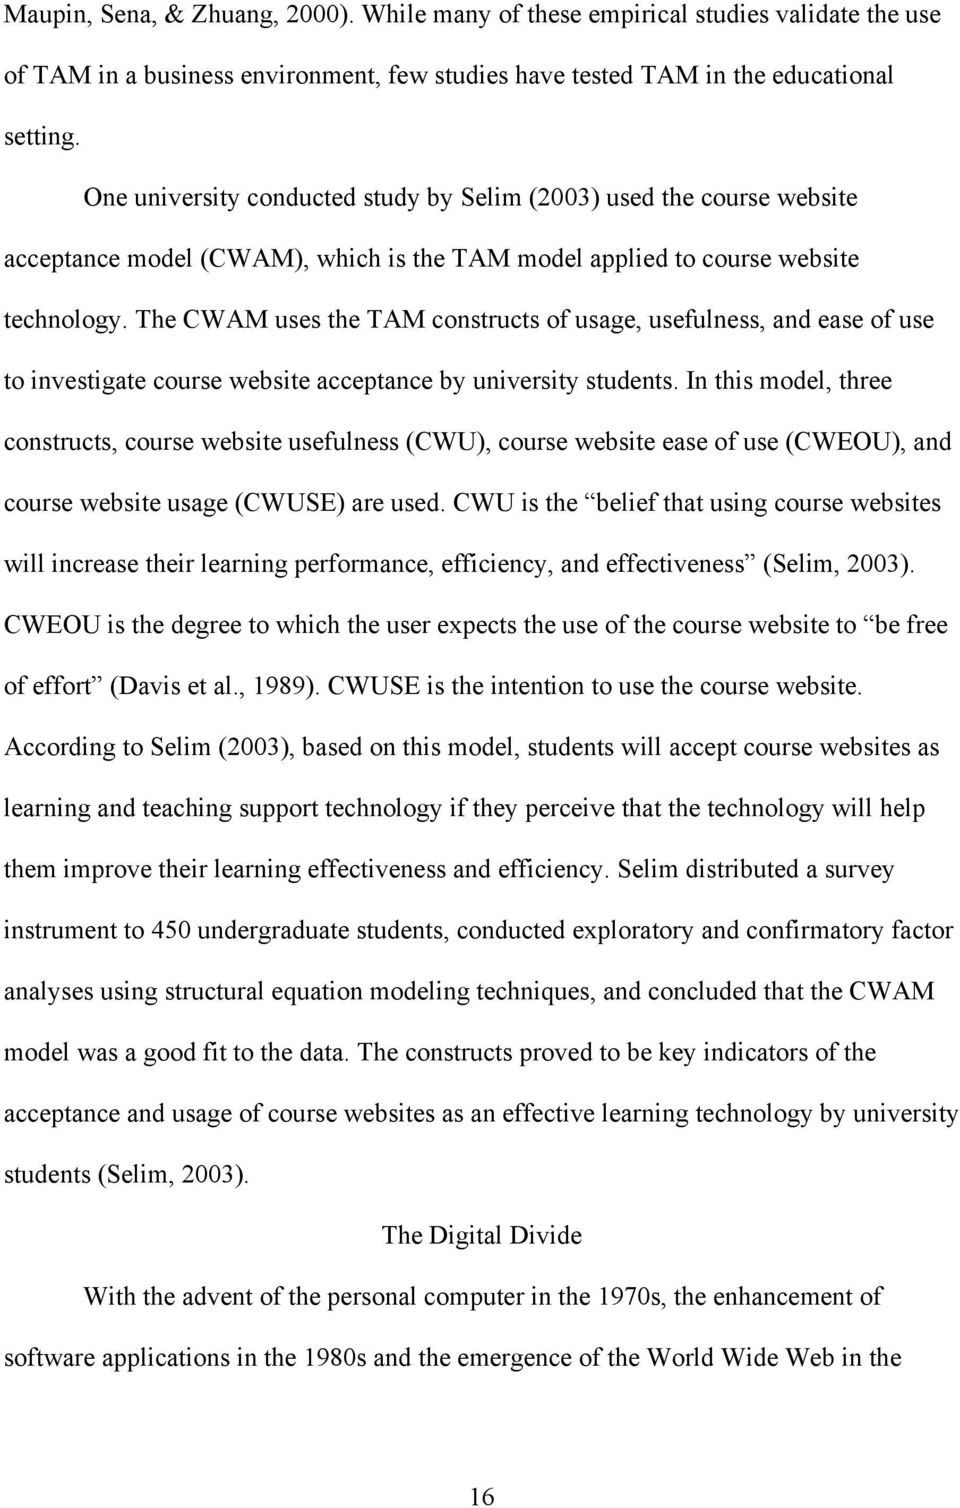 The CWAM uses the TAM constructs of usage, usefulness, and ease of use to investigate course website acceptance by university students.